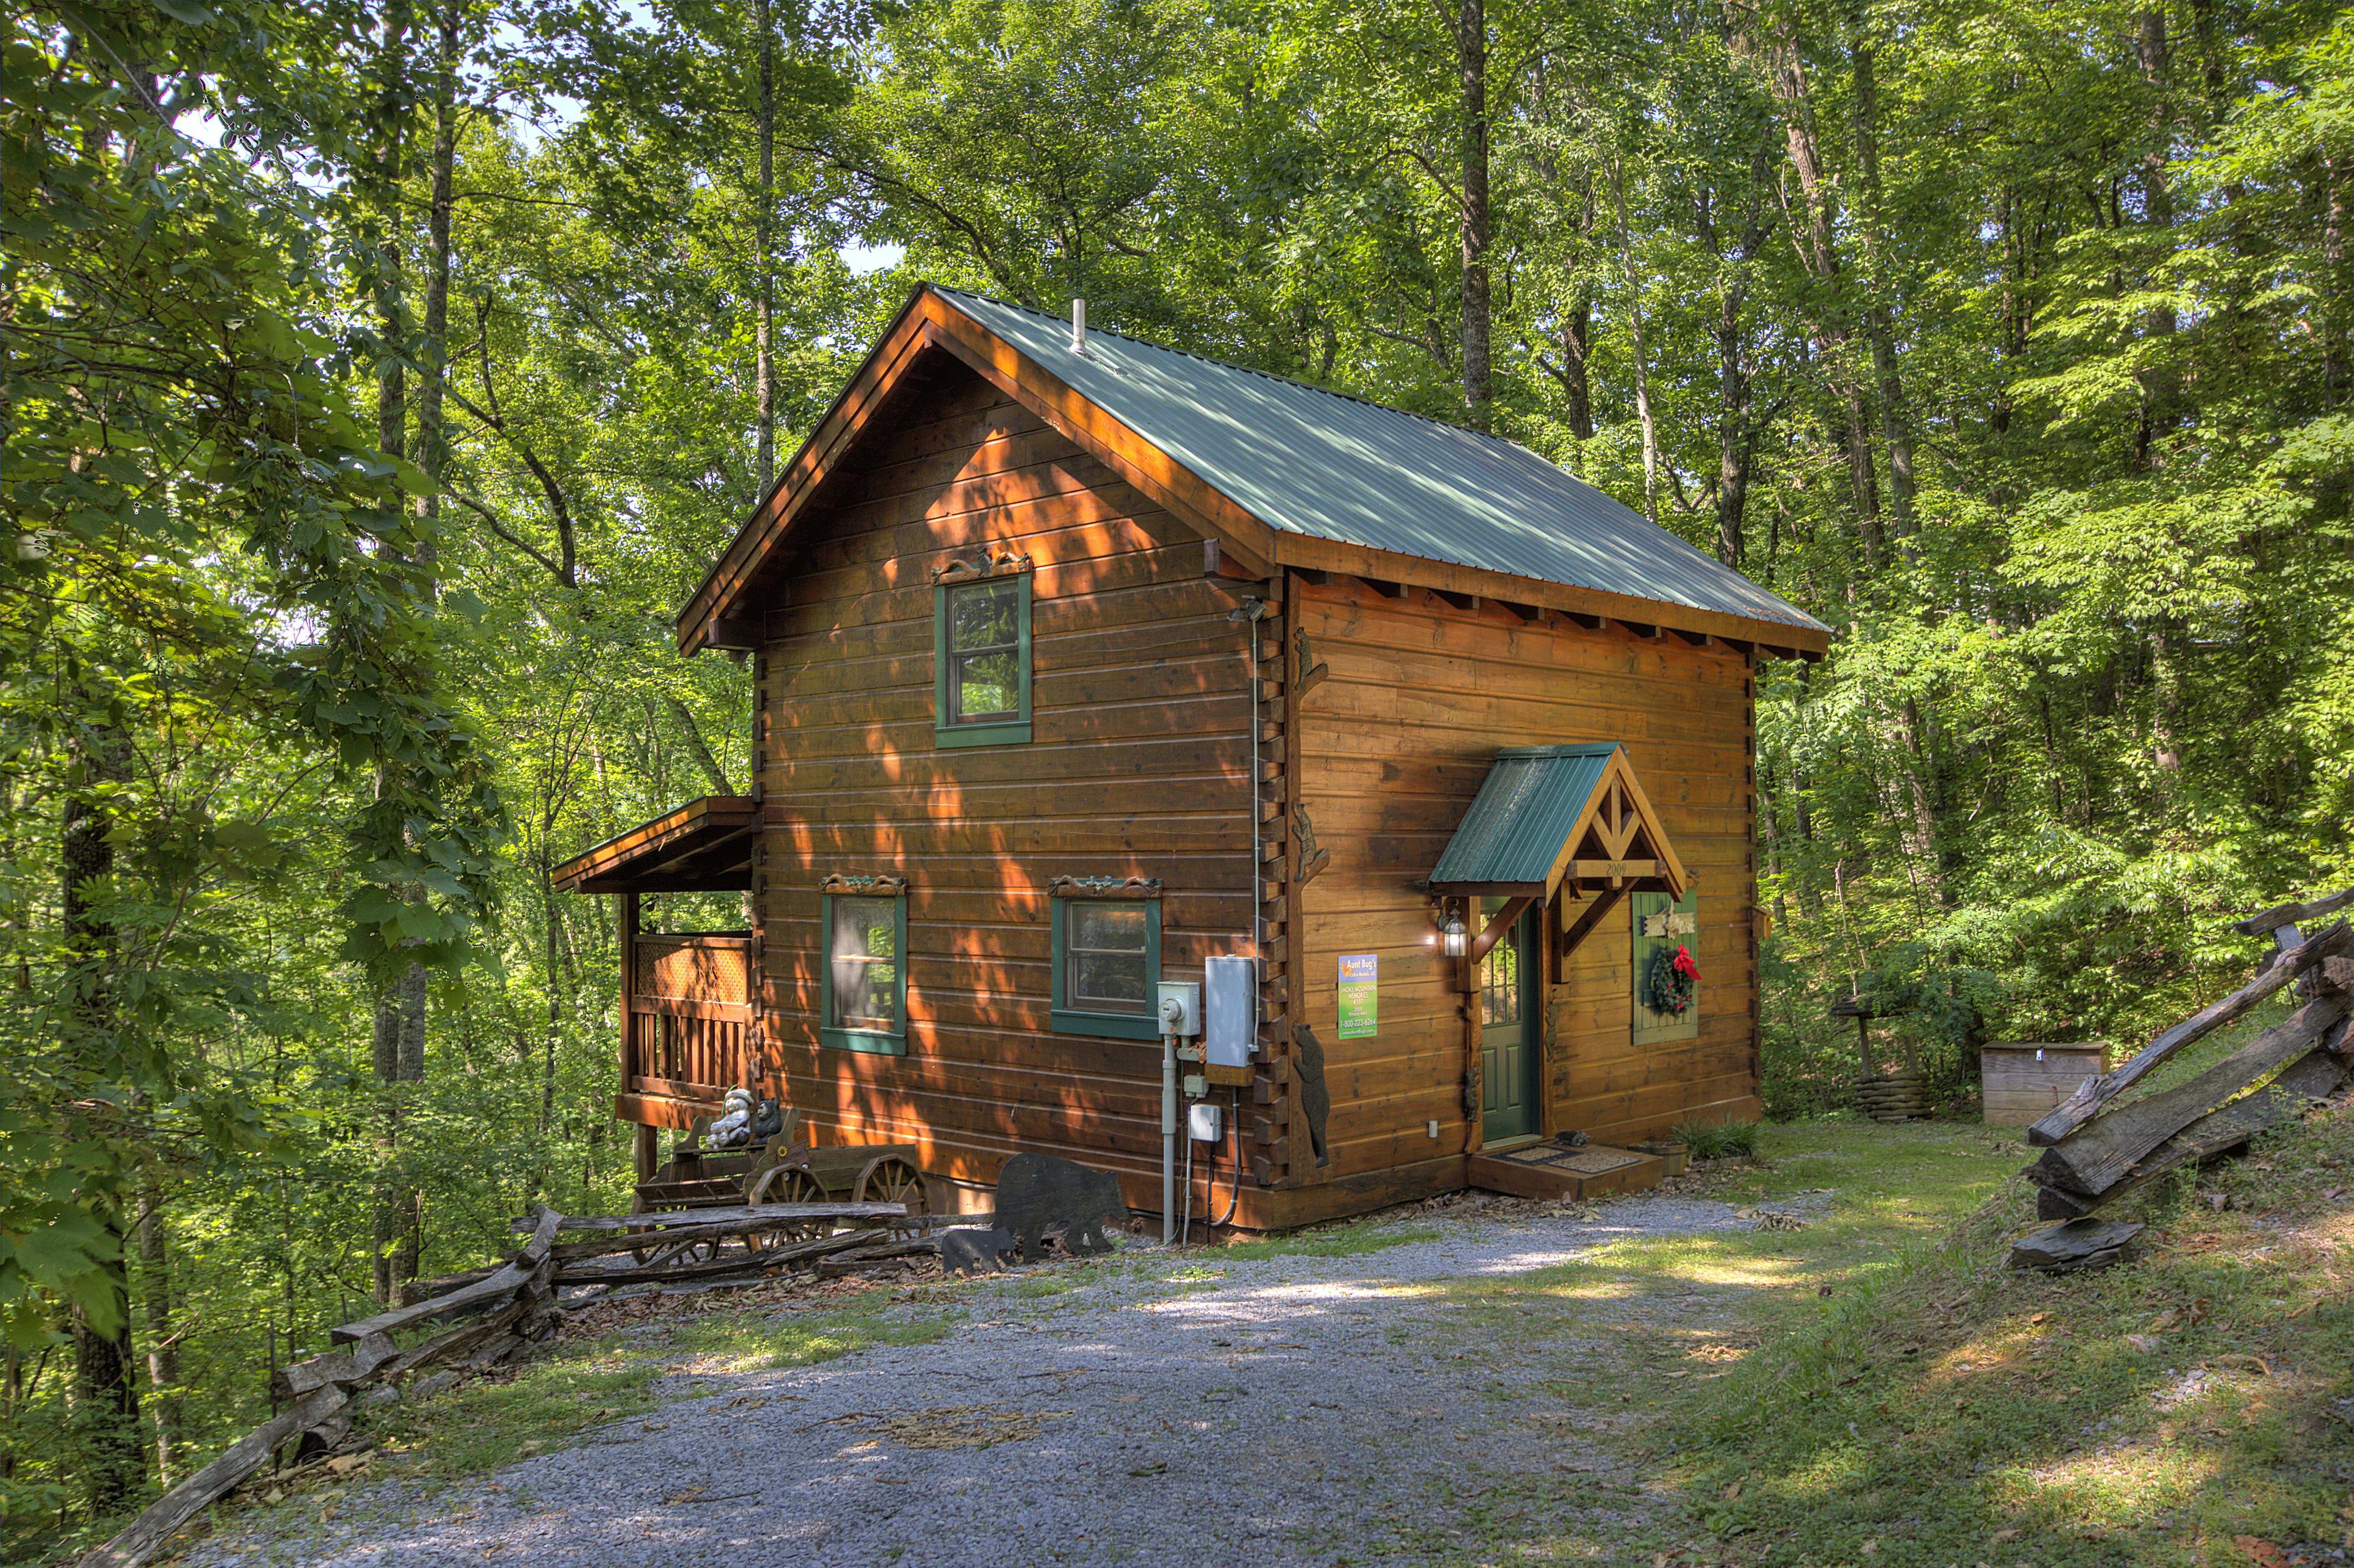 tennessee forge rental fireside two pet mountain pigeonforgetwobedroomcabinrentalthumb pigeon and secluded cabins friendly bedroom caneycreekmountaincabins chalets cabin smoky